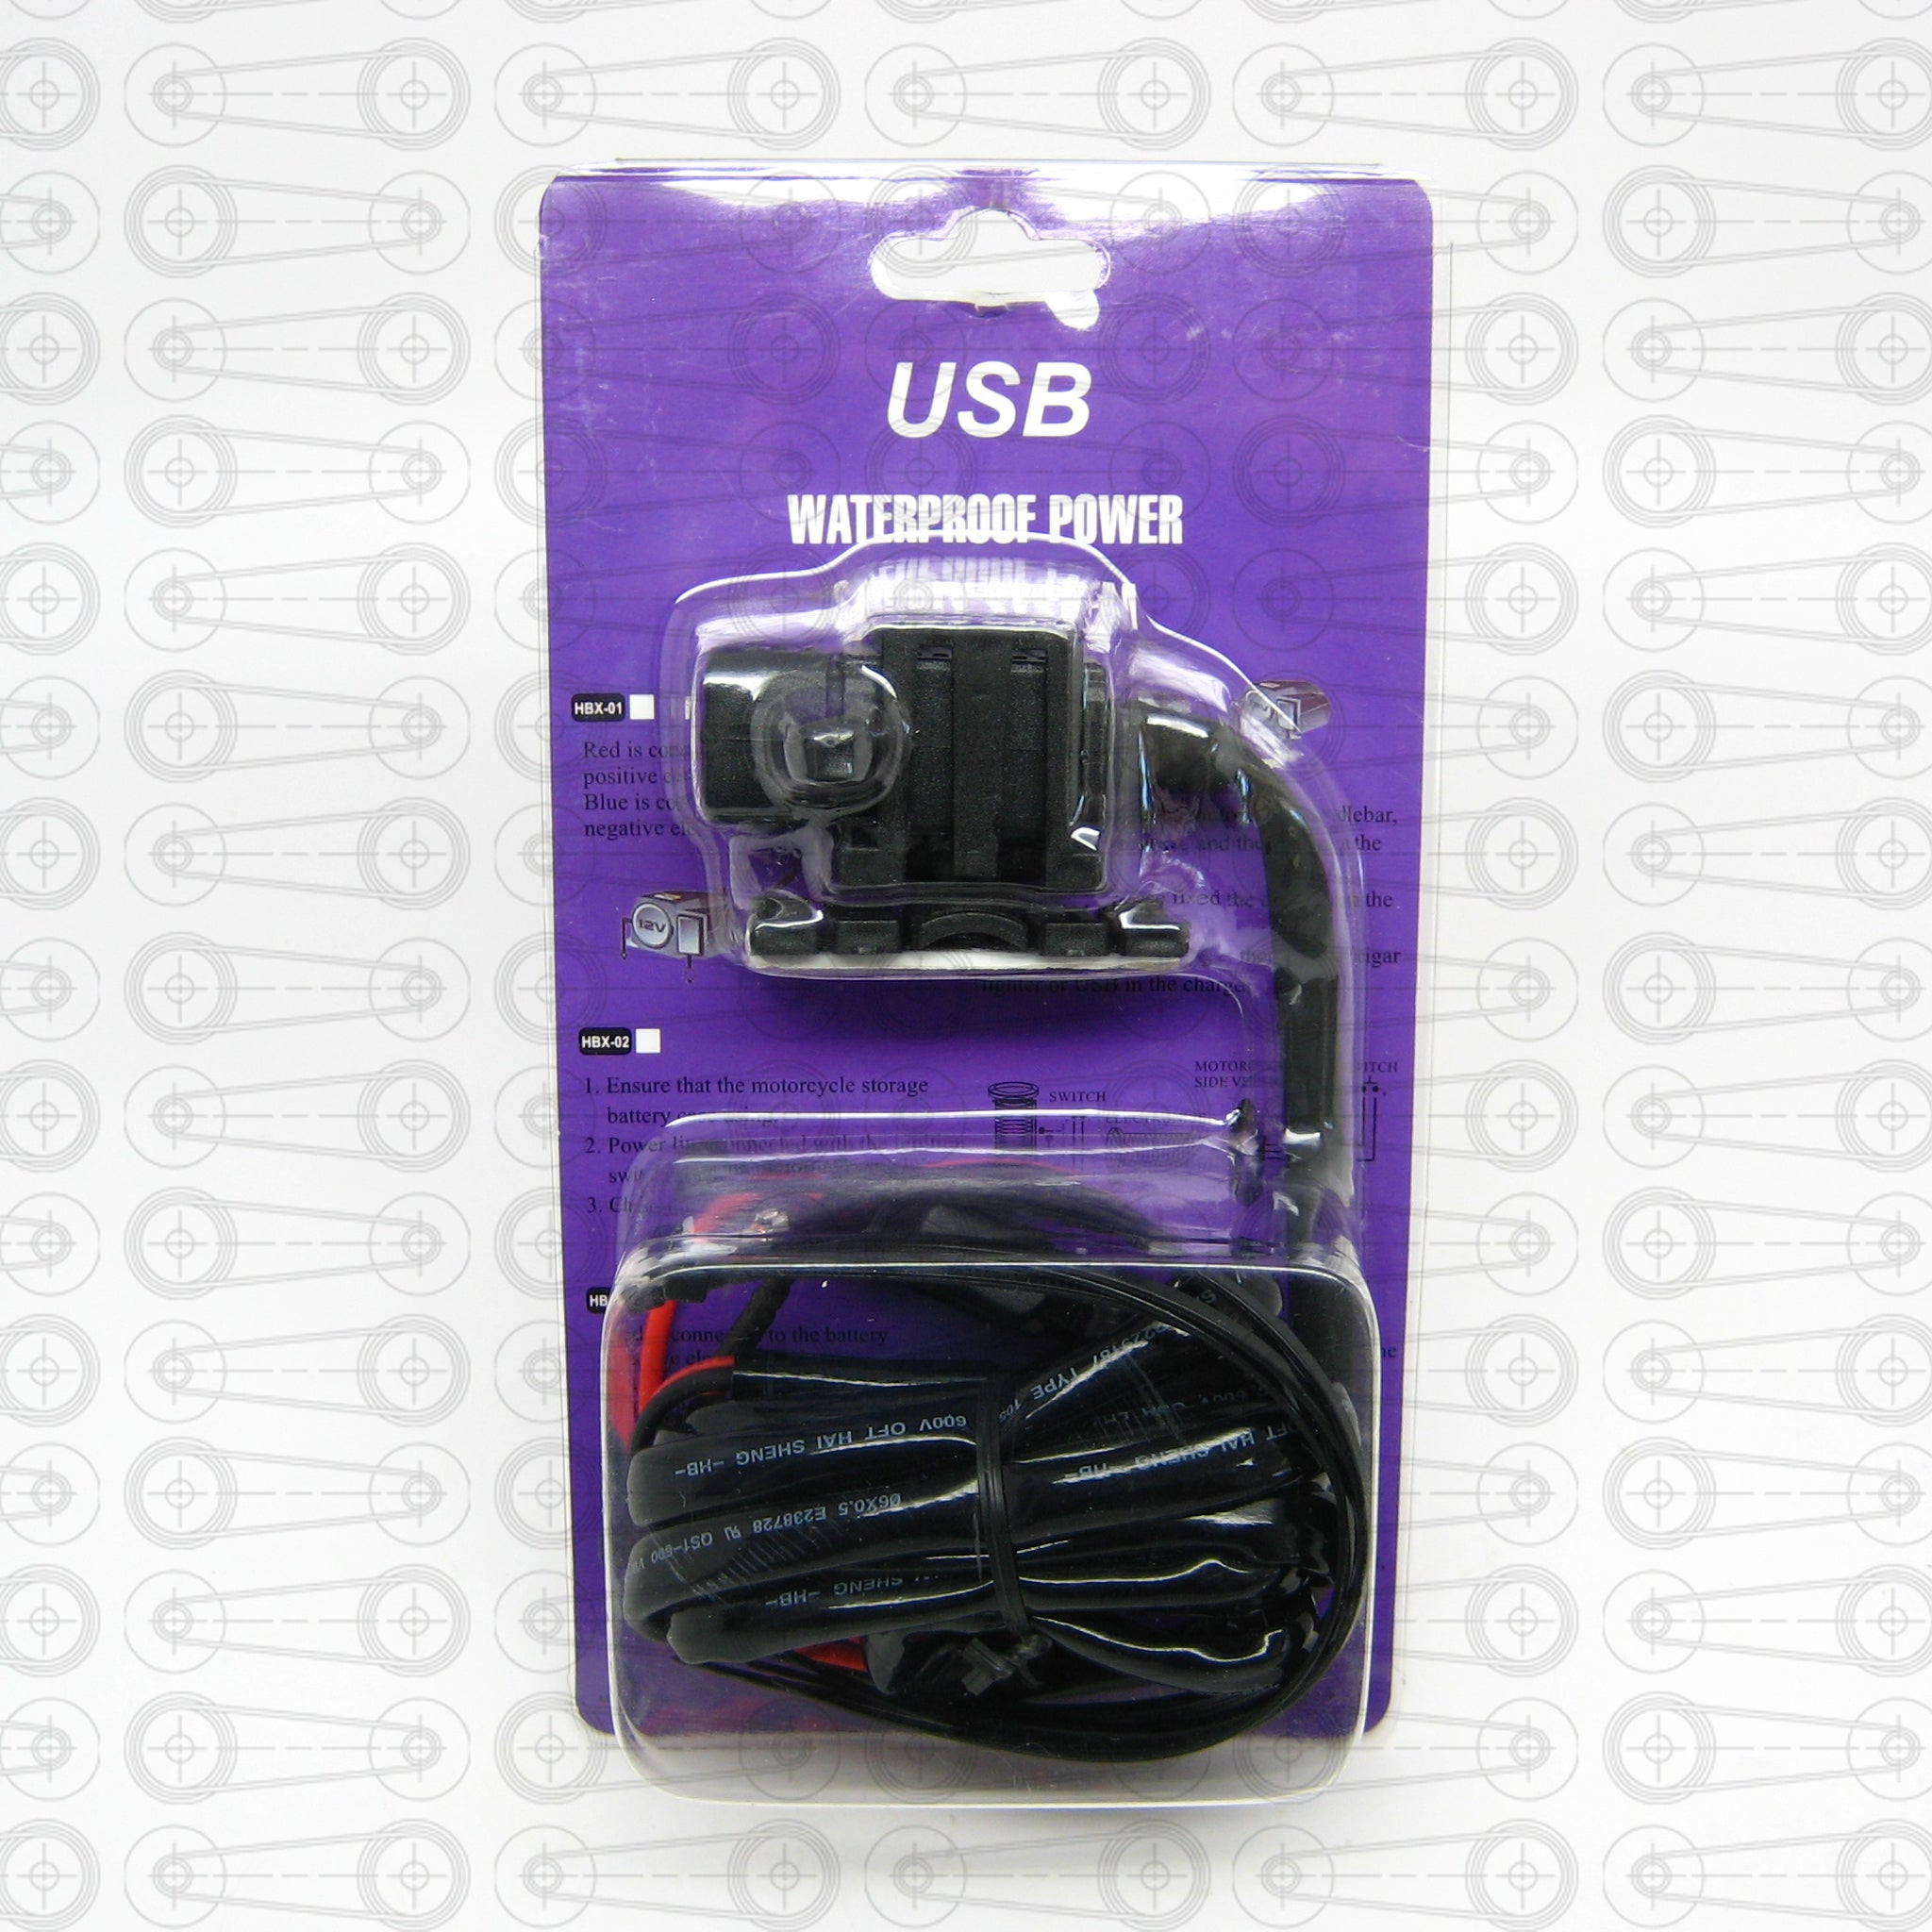 Waterproof USB Charger (Universal)